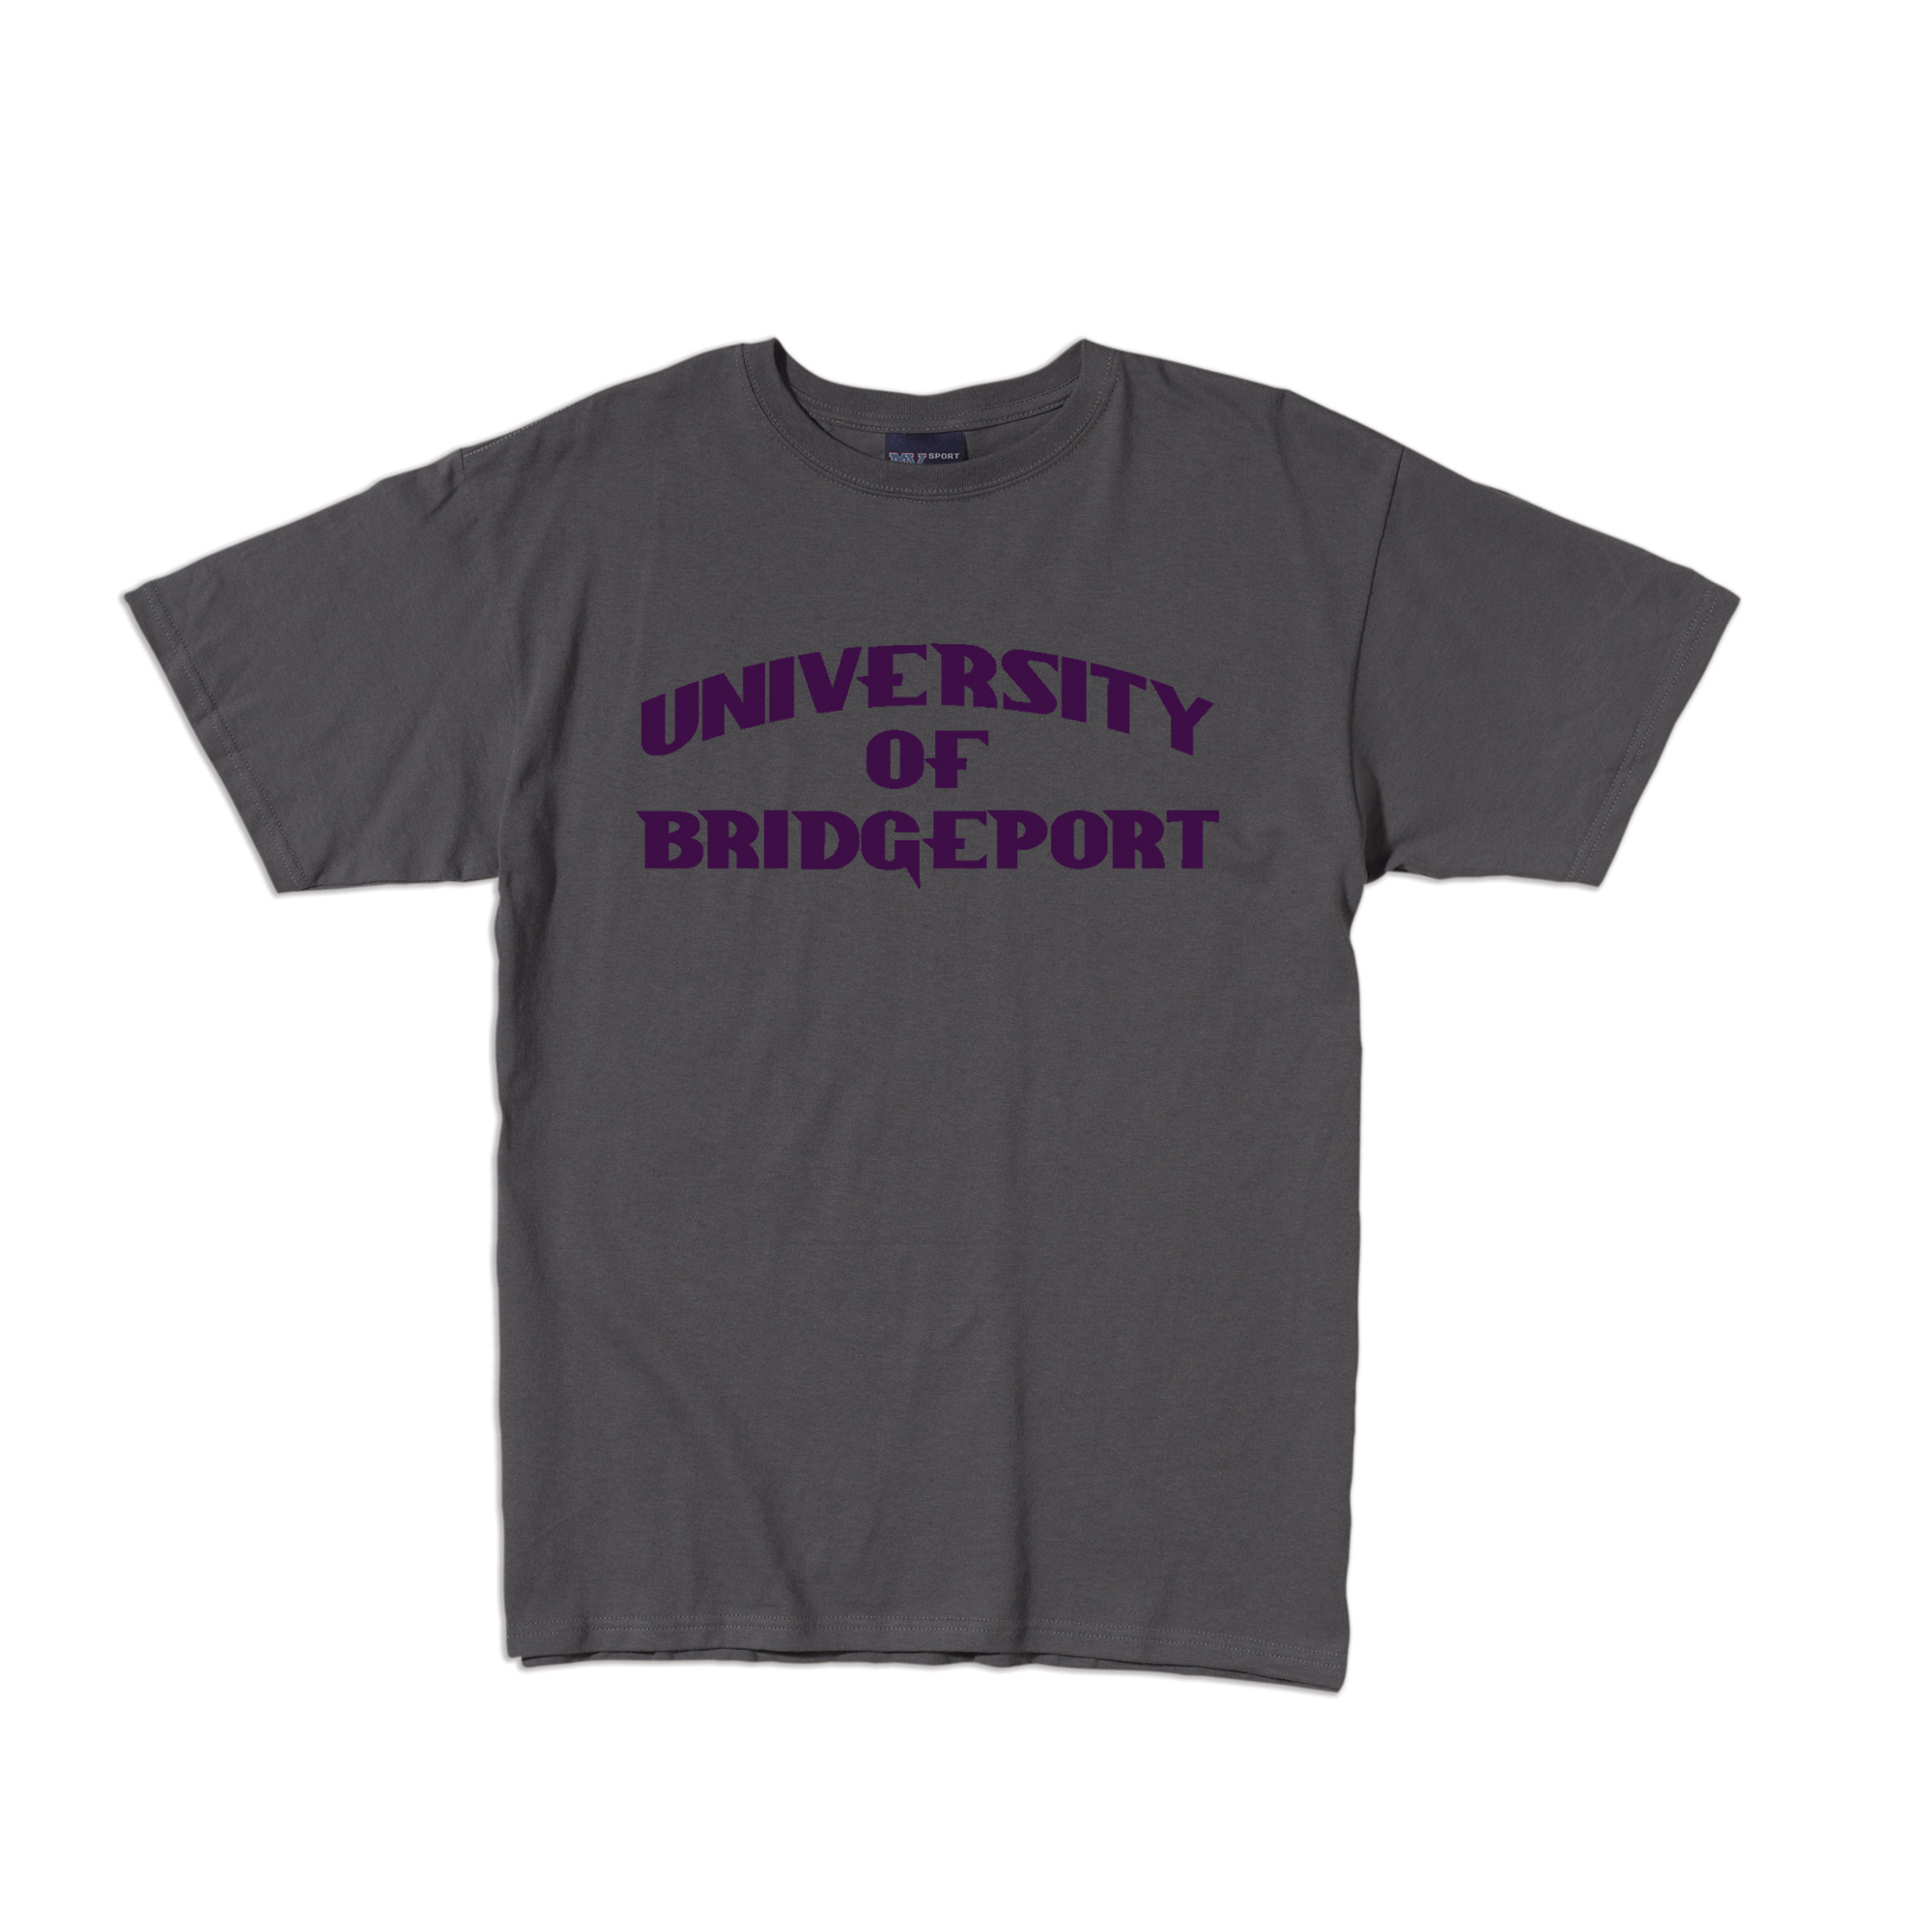 University of Bridgeport Tee - Vintage Granite